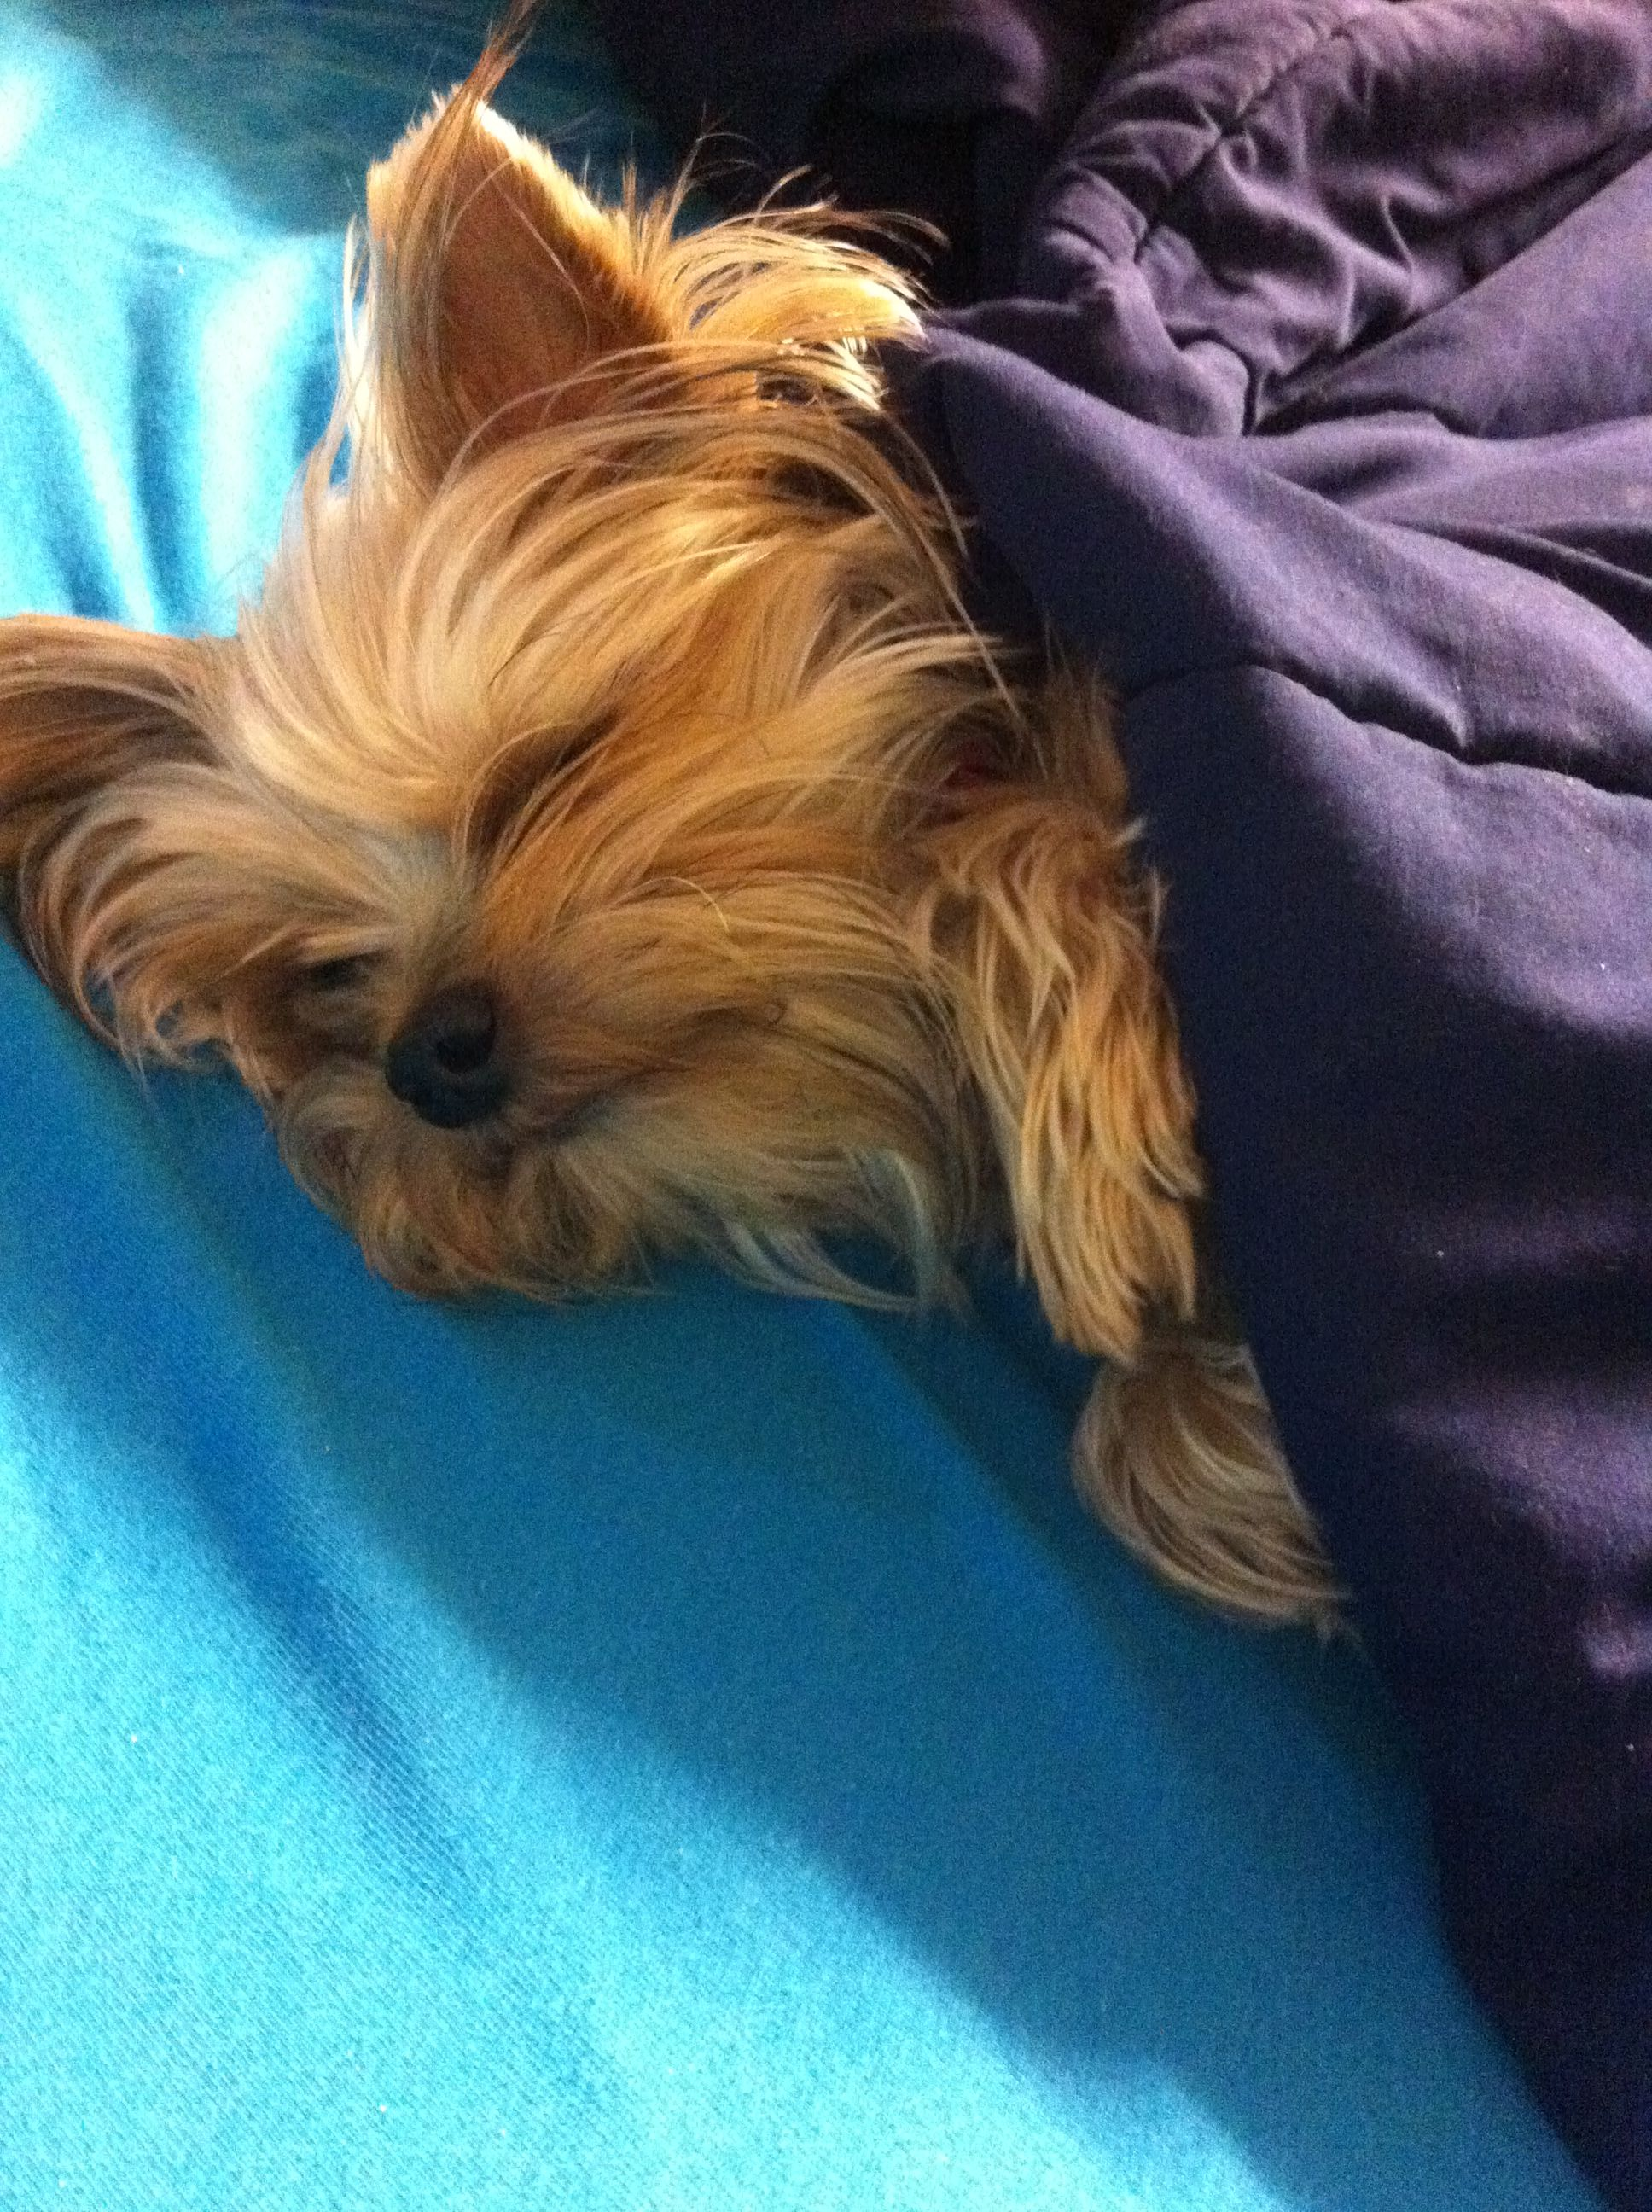 My Yorkie Millie Please Follow And Repost My Board She Was Lost On Feb 5 2013 In Lufkin Tx On 103 East There Is A Yorkie Terrier Yorkie Puppy Yorkie Dogs